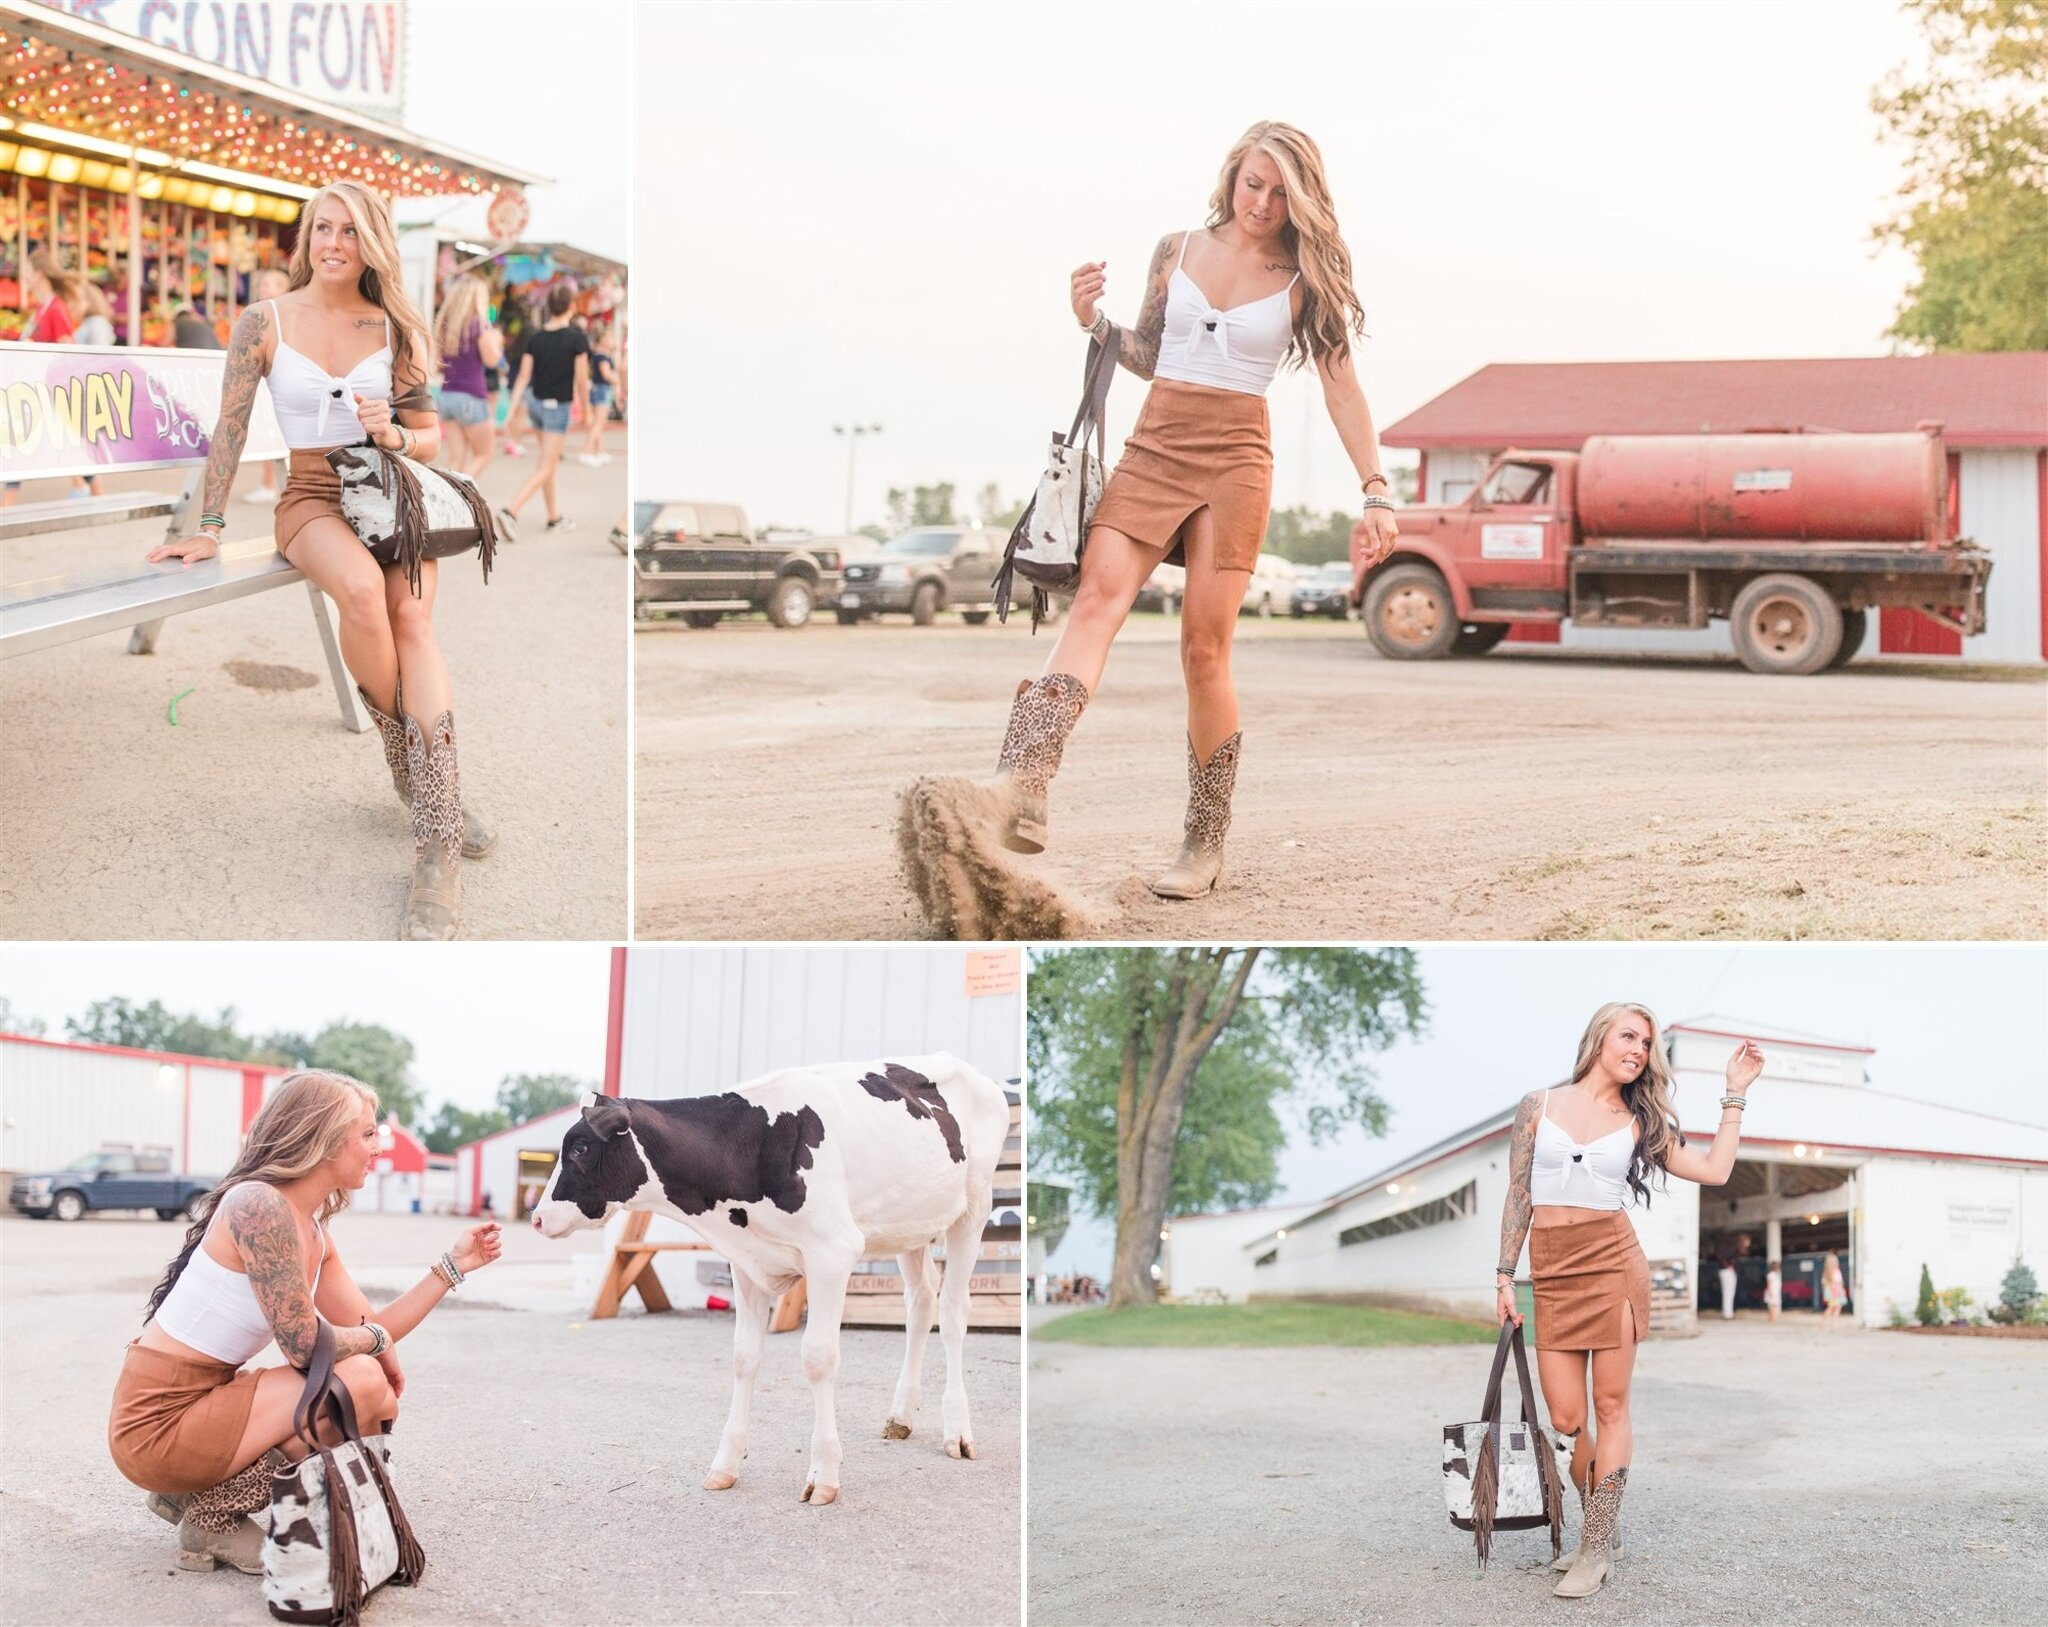 Inspirational Photoshoot at the Outagamie County Fair in Seymour, WI. Cute photo with a calf and carnival games.